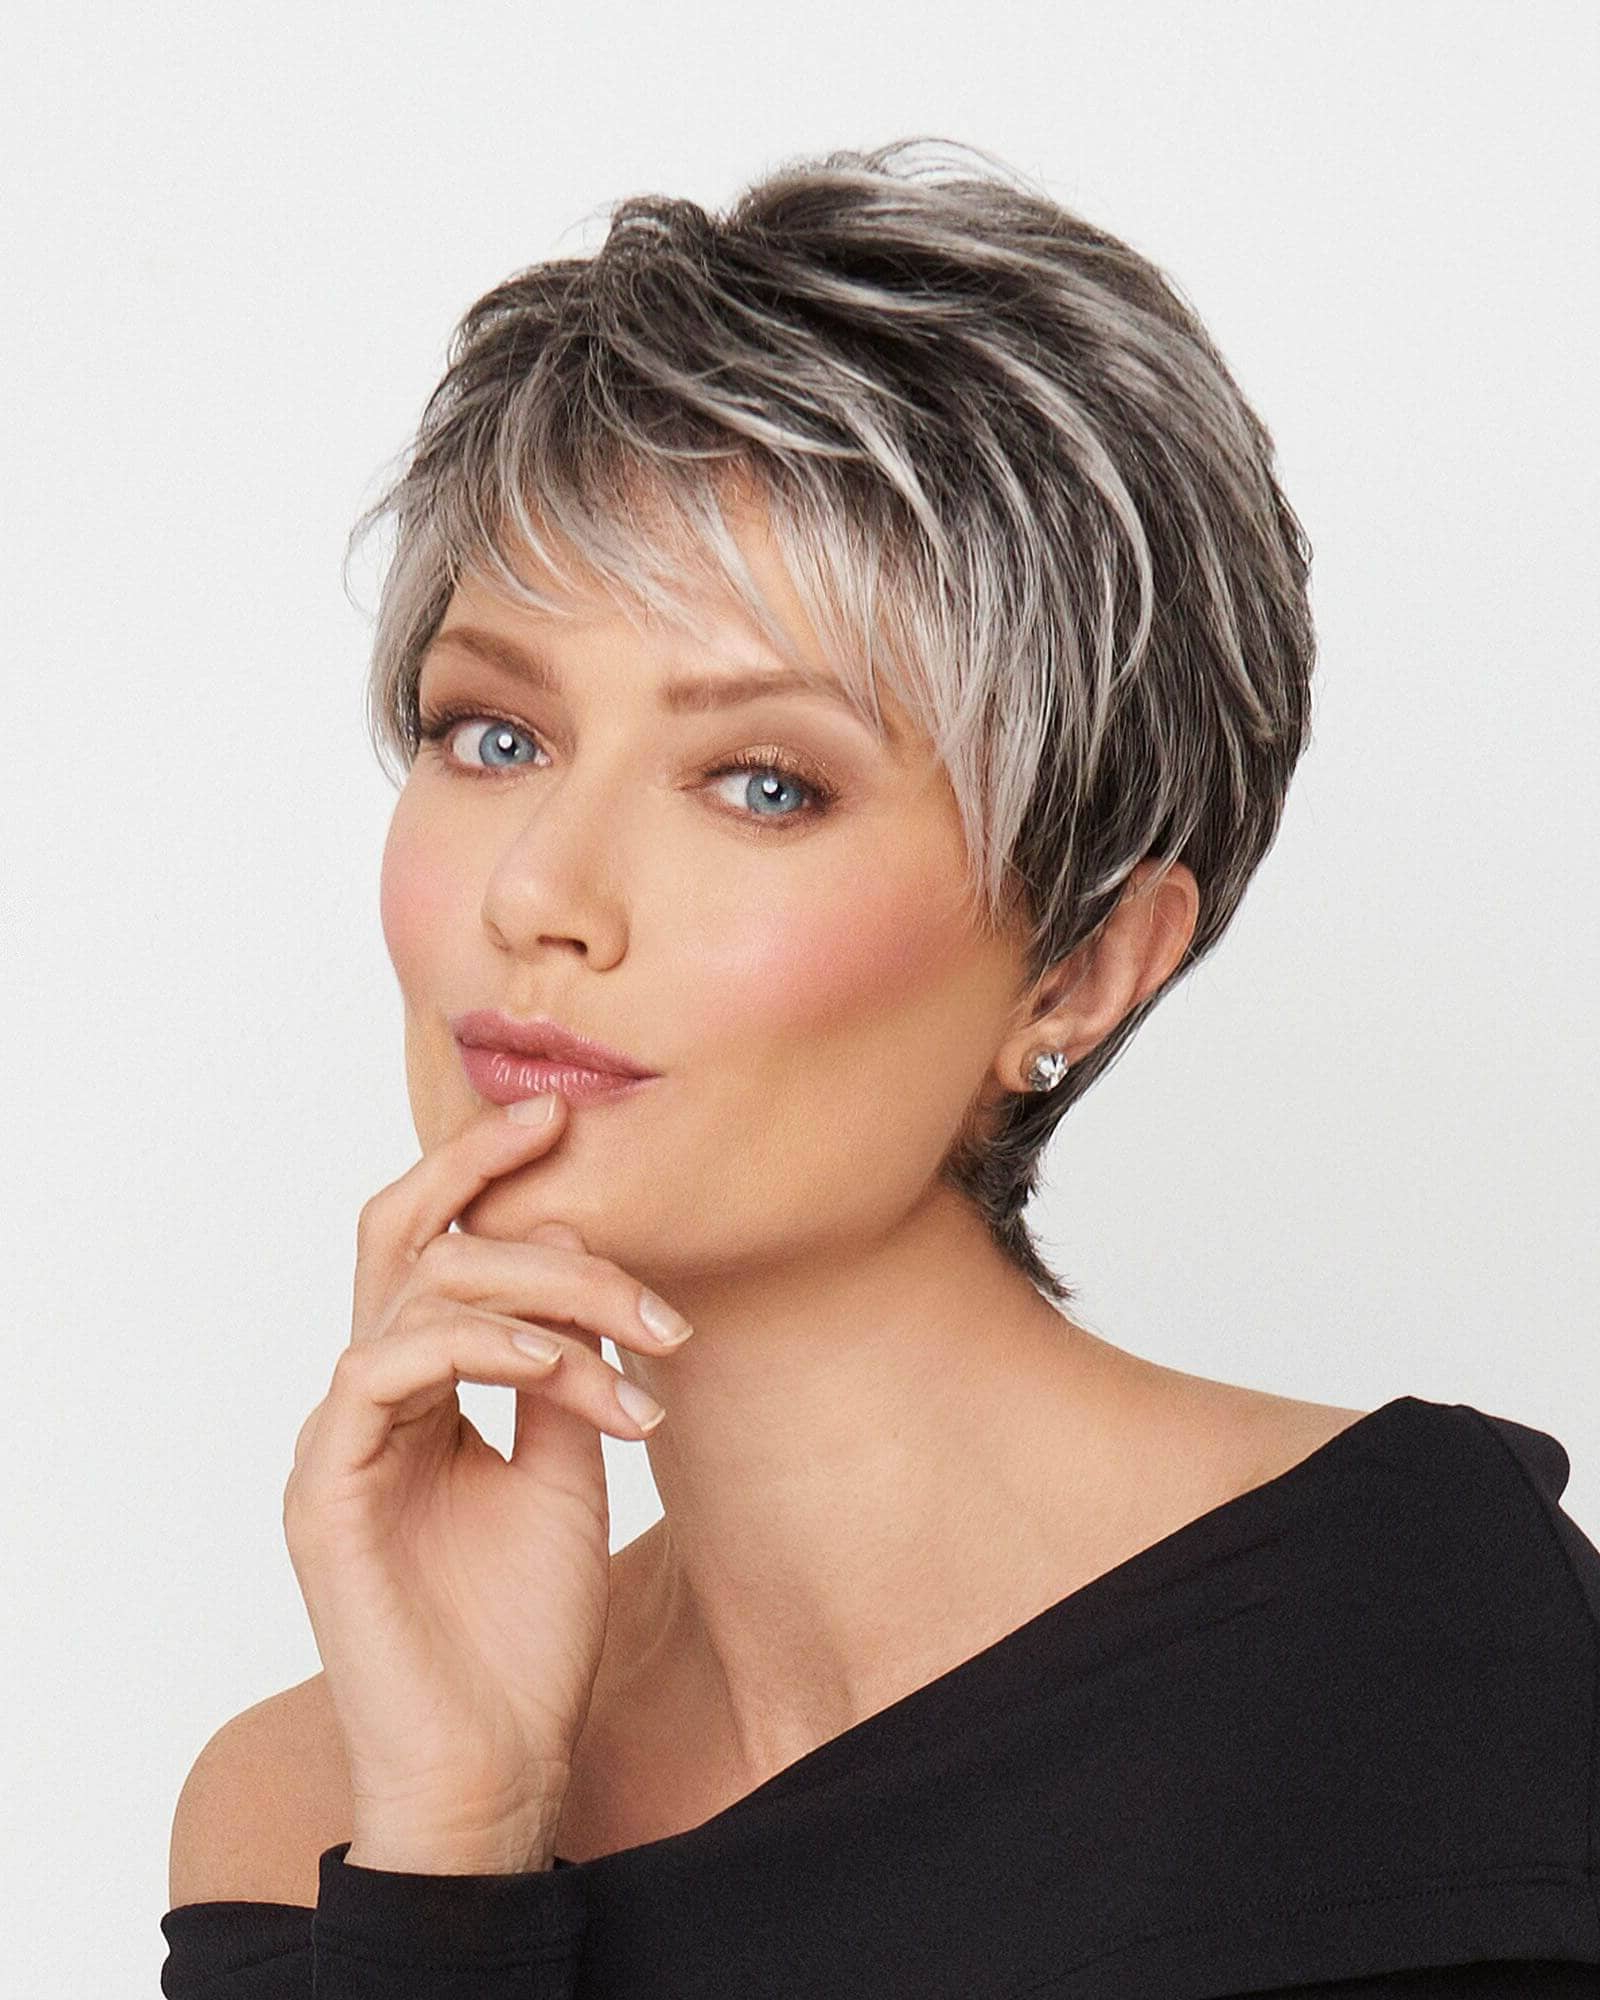 50 Pixie Haircuts You'll See Trending In 2019 Within Bold Pixie Haircuts (View 11 of 20)